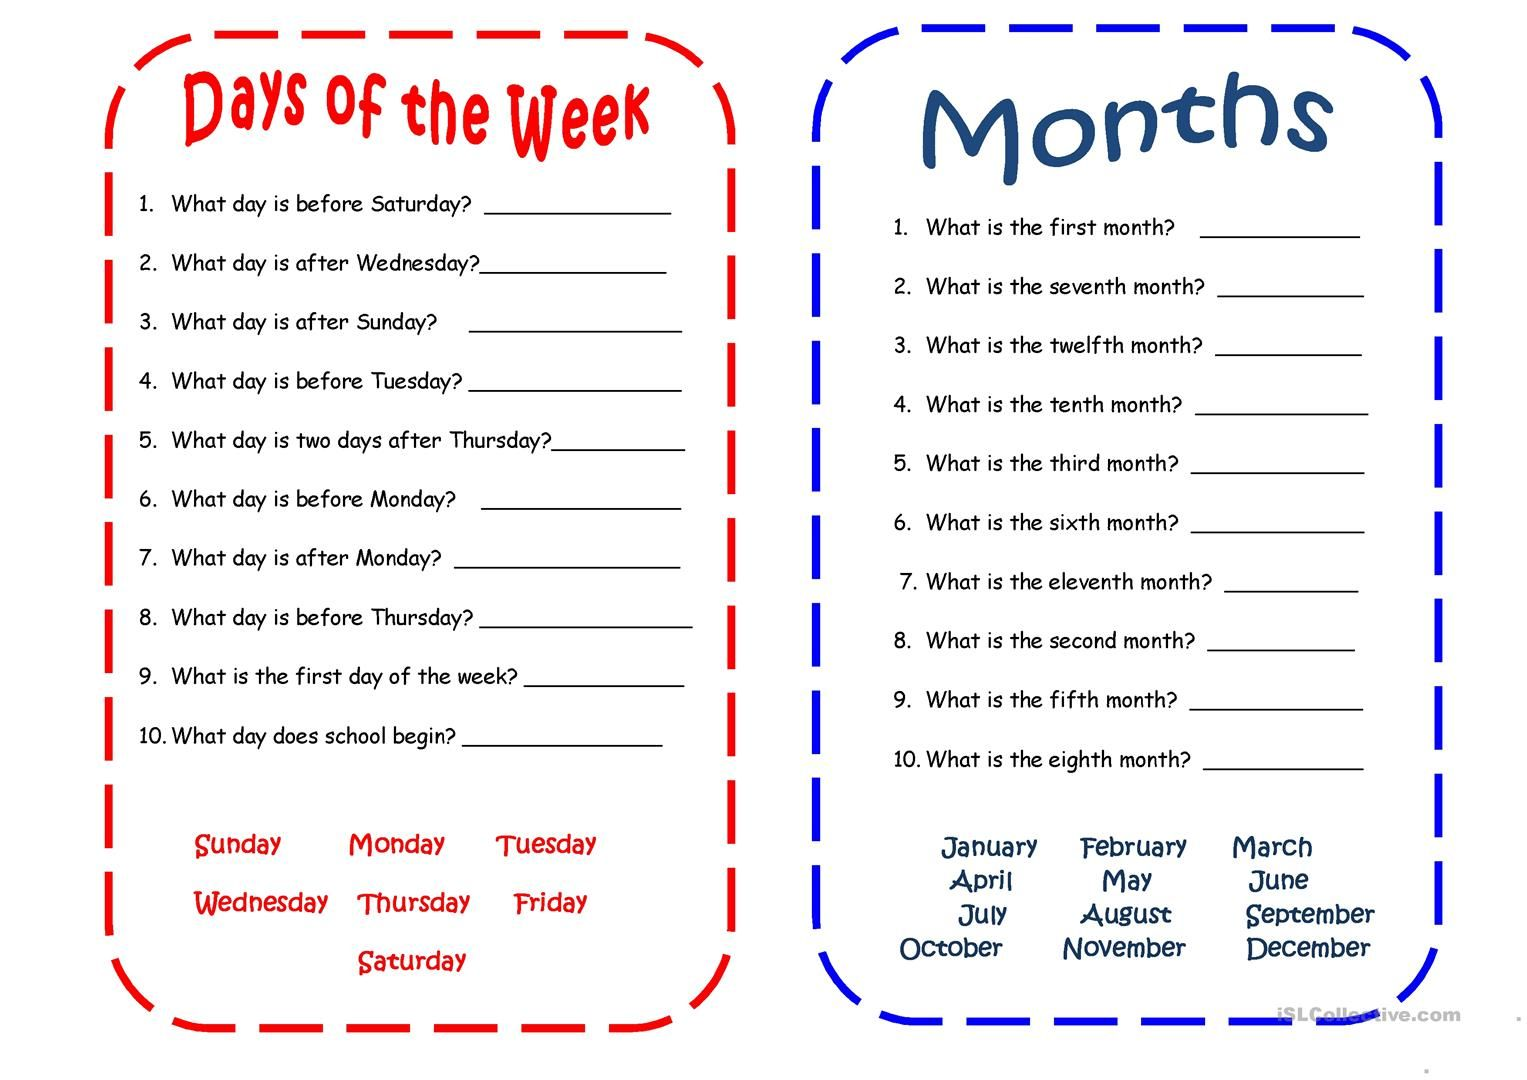 Days and Months worksheet - Free ESL printable worksheets made by teachers    English worksheets for kids [ 1080 x 1527 Pixel ]